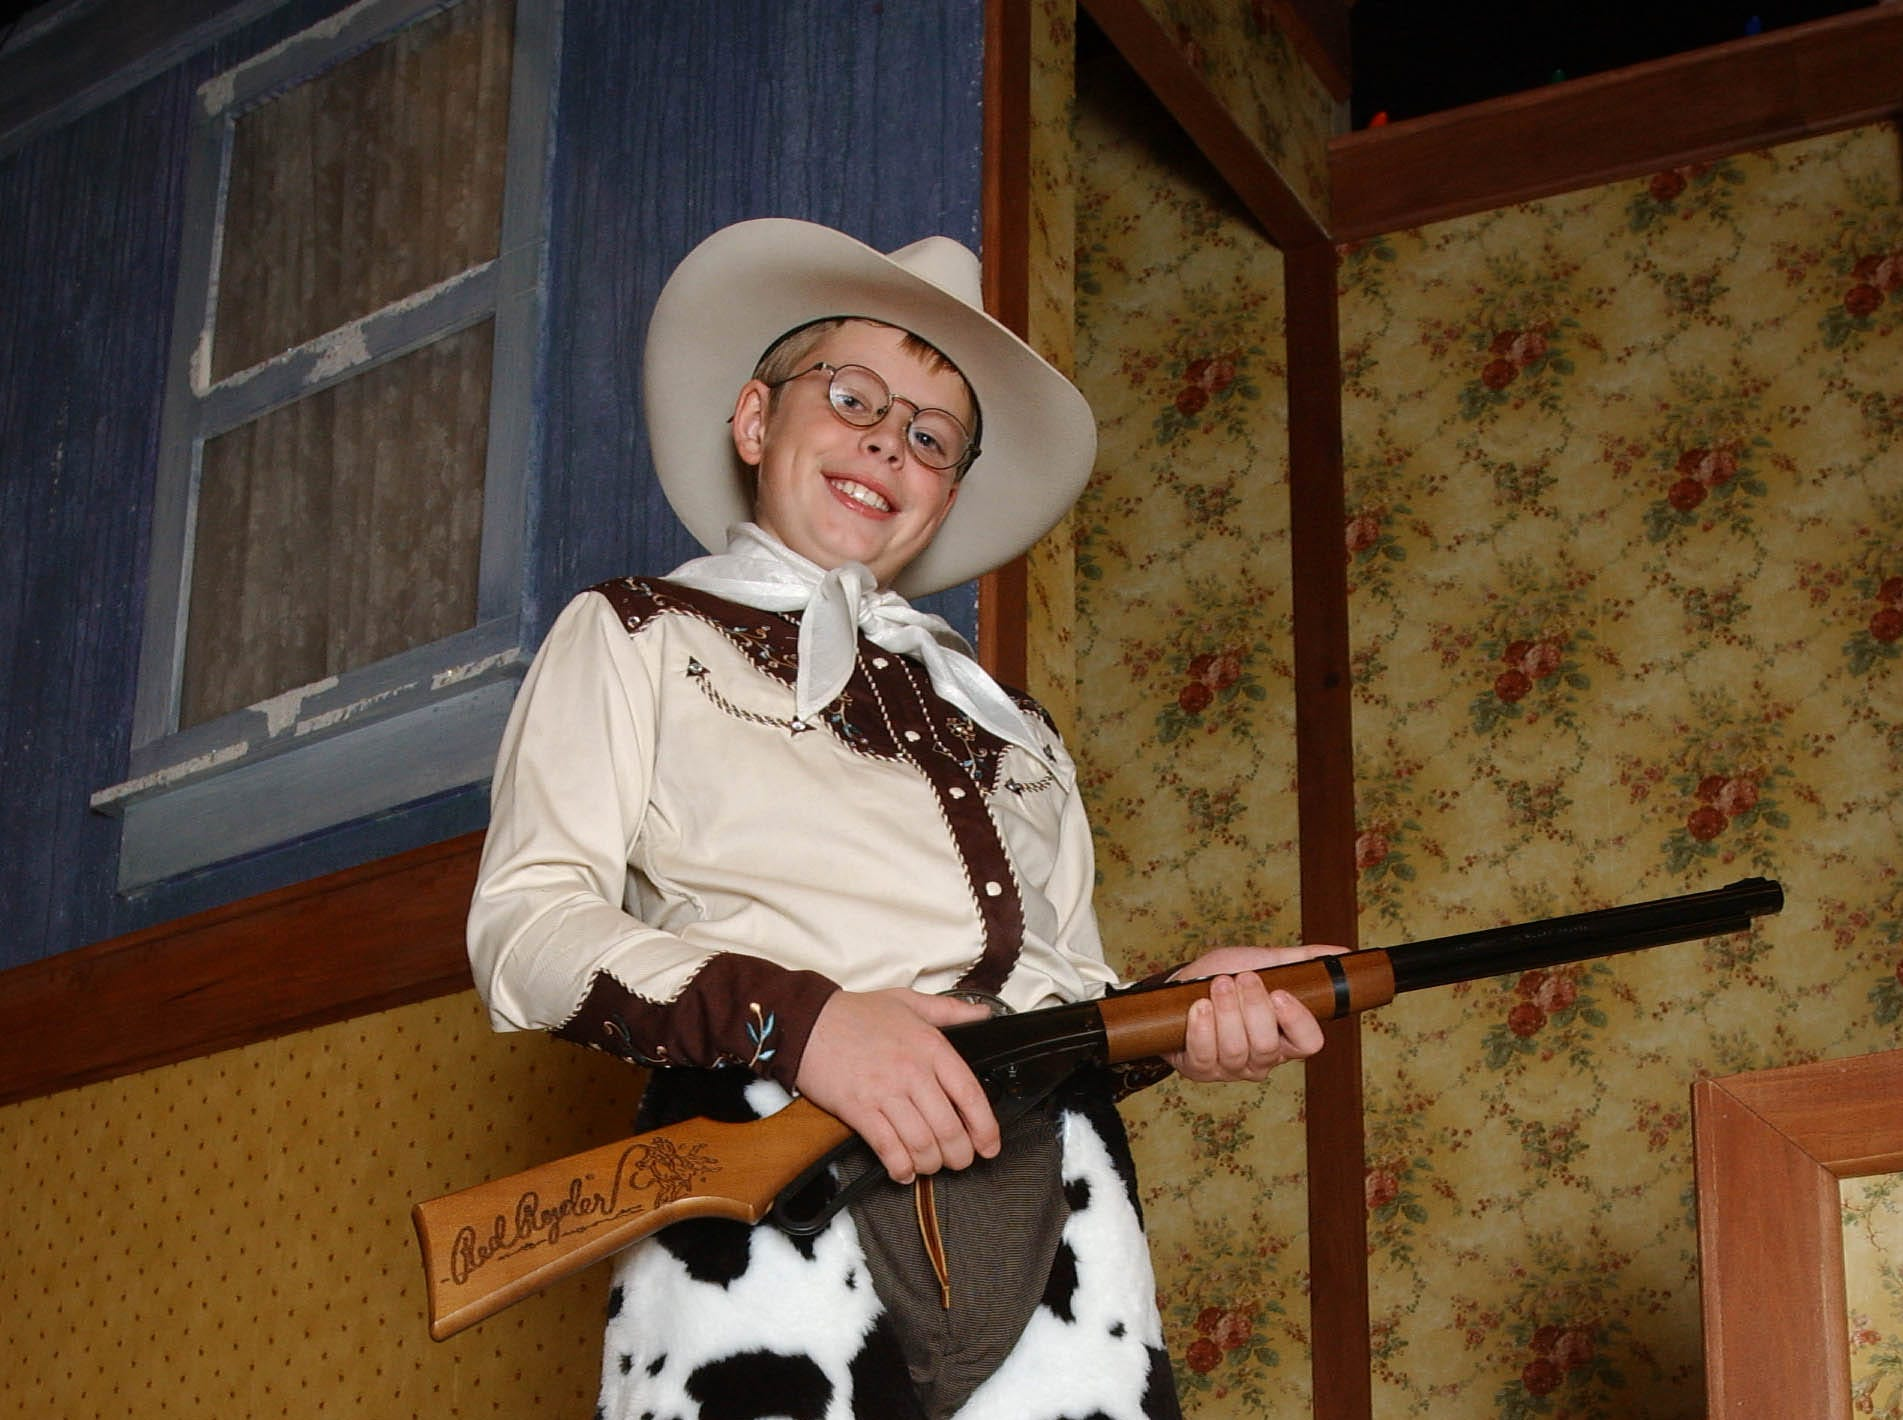 RALPHIE28, CUE, PORTER, 1. - Ralphie, played by Zach Spaciel, is the star of one of the season's favorites, 'A Christmas Story ' being performed by First Stage Children's Theater at the Marcus Center for the Performing Arts. Photograph by Gary Porter. November 17, 2004.